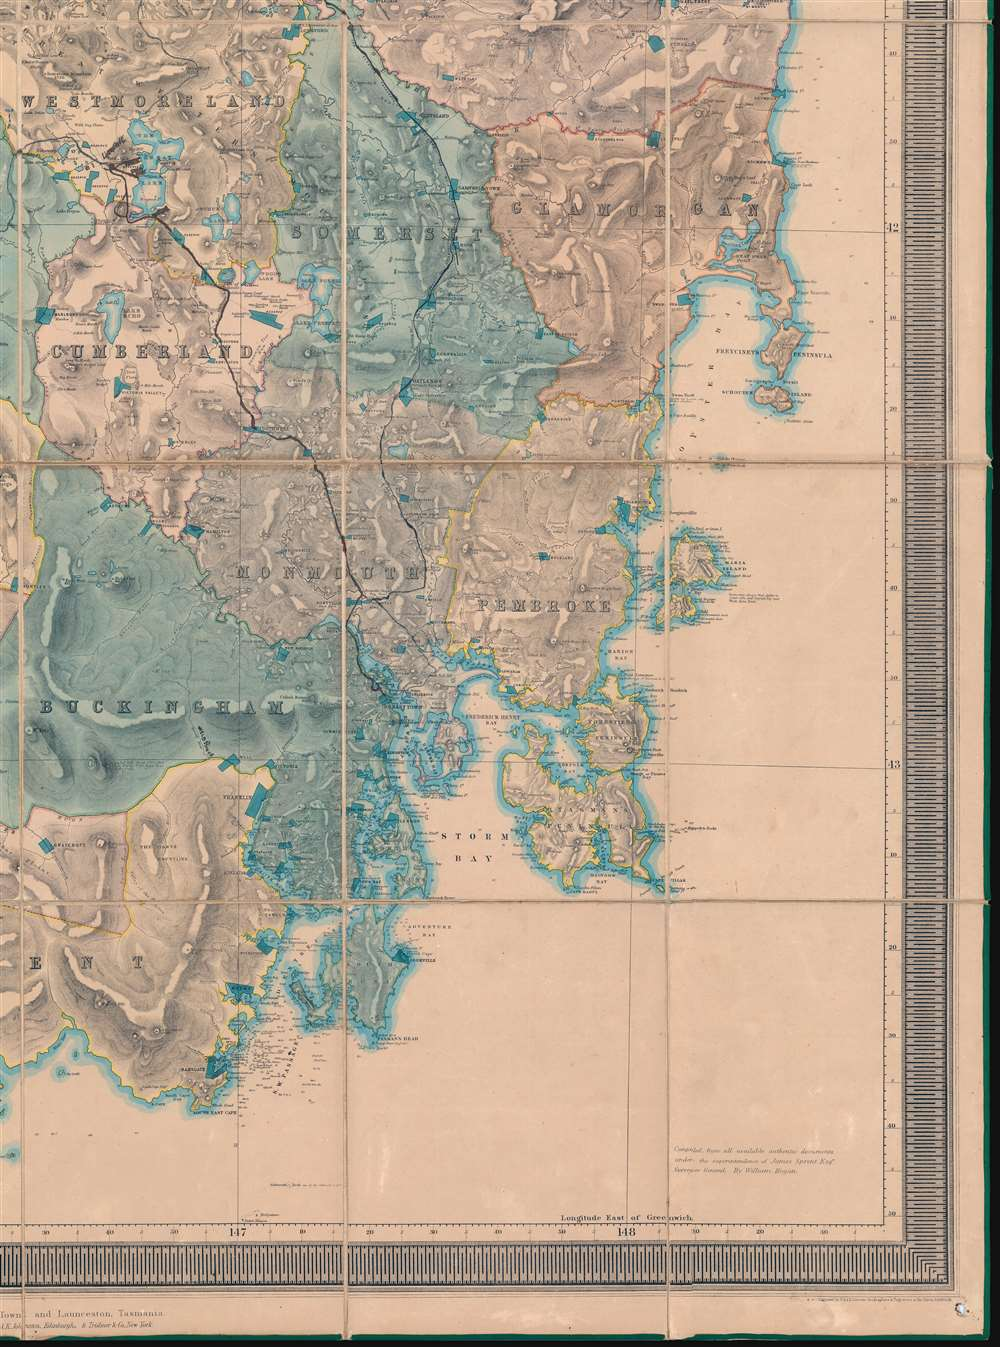 This Map of Tasmania in 1859, Sir Henry Edward Fox Young Knight Companion of the Most Honorable Order of the Bath Being Governor in Chief, and teh Honble. Francis Smigh Attorney General being Premier is dedicated to his Excellency and the Parliament by James Sprent, Surveyor General. - Alternate View 5